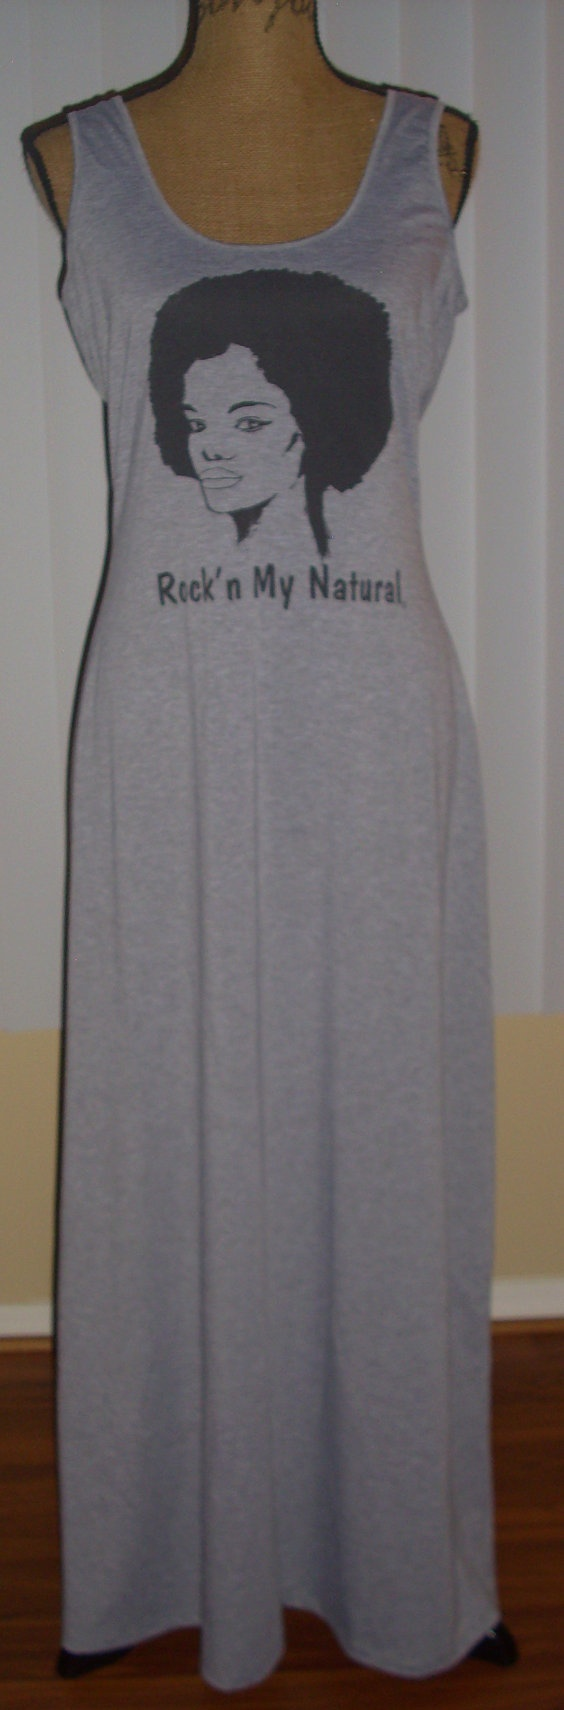 Black t shirt dress etsy - Natural Hair Maxi Dress By Rockthatnatural On Etsy 40 00 I Ned This Dress